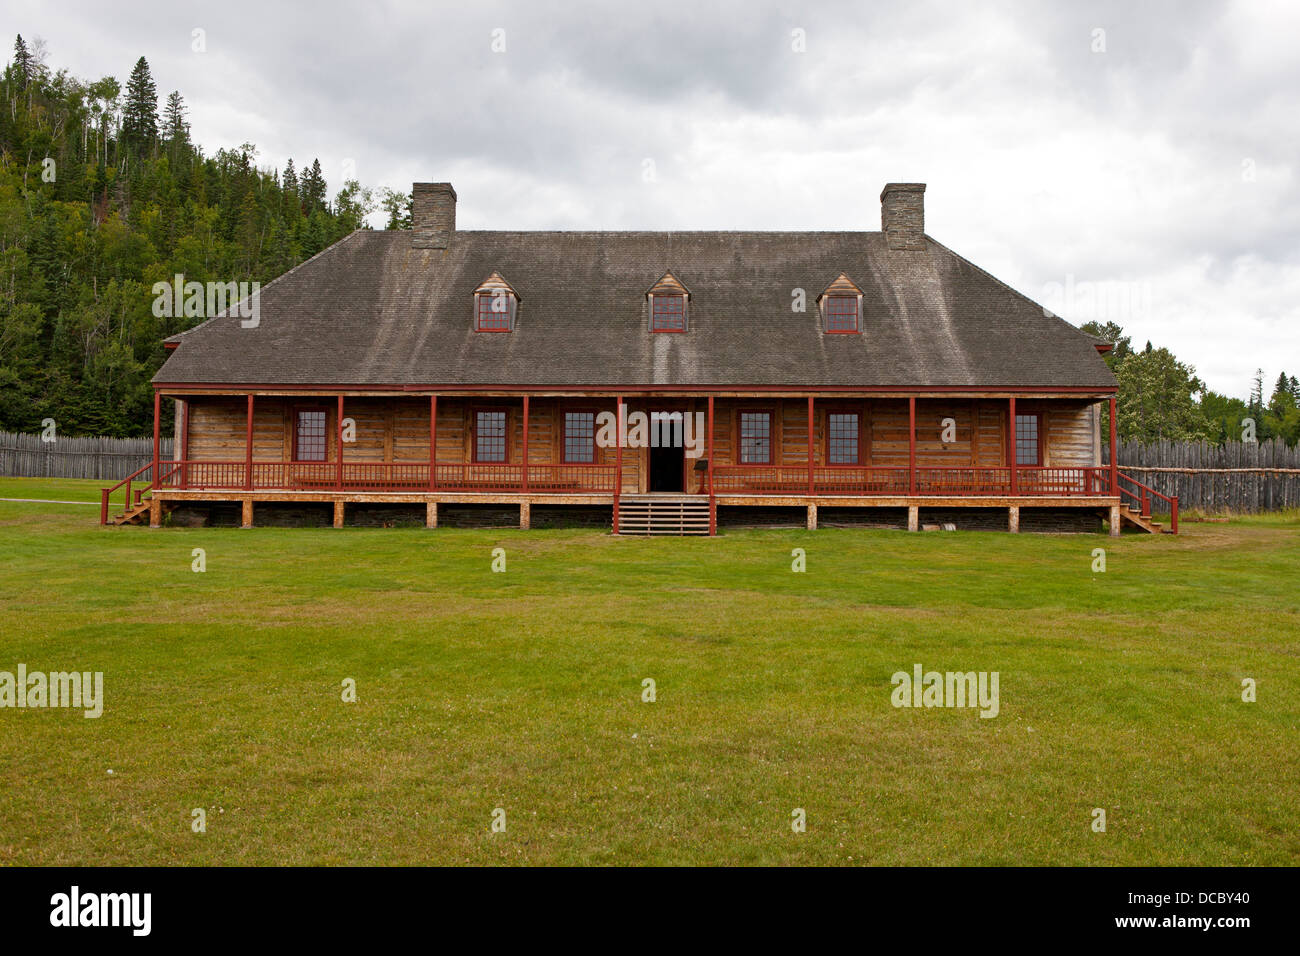 Exterior of the Great Hall, Grand Portage National Monument, Grand Portage, Minnesota, United States of America - Stock Image